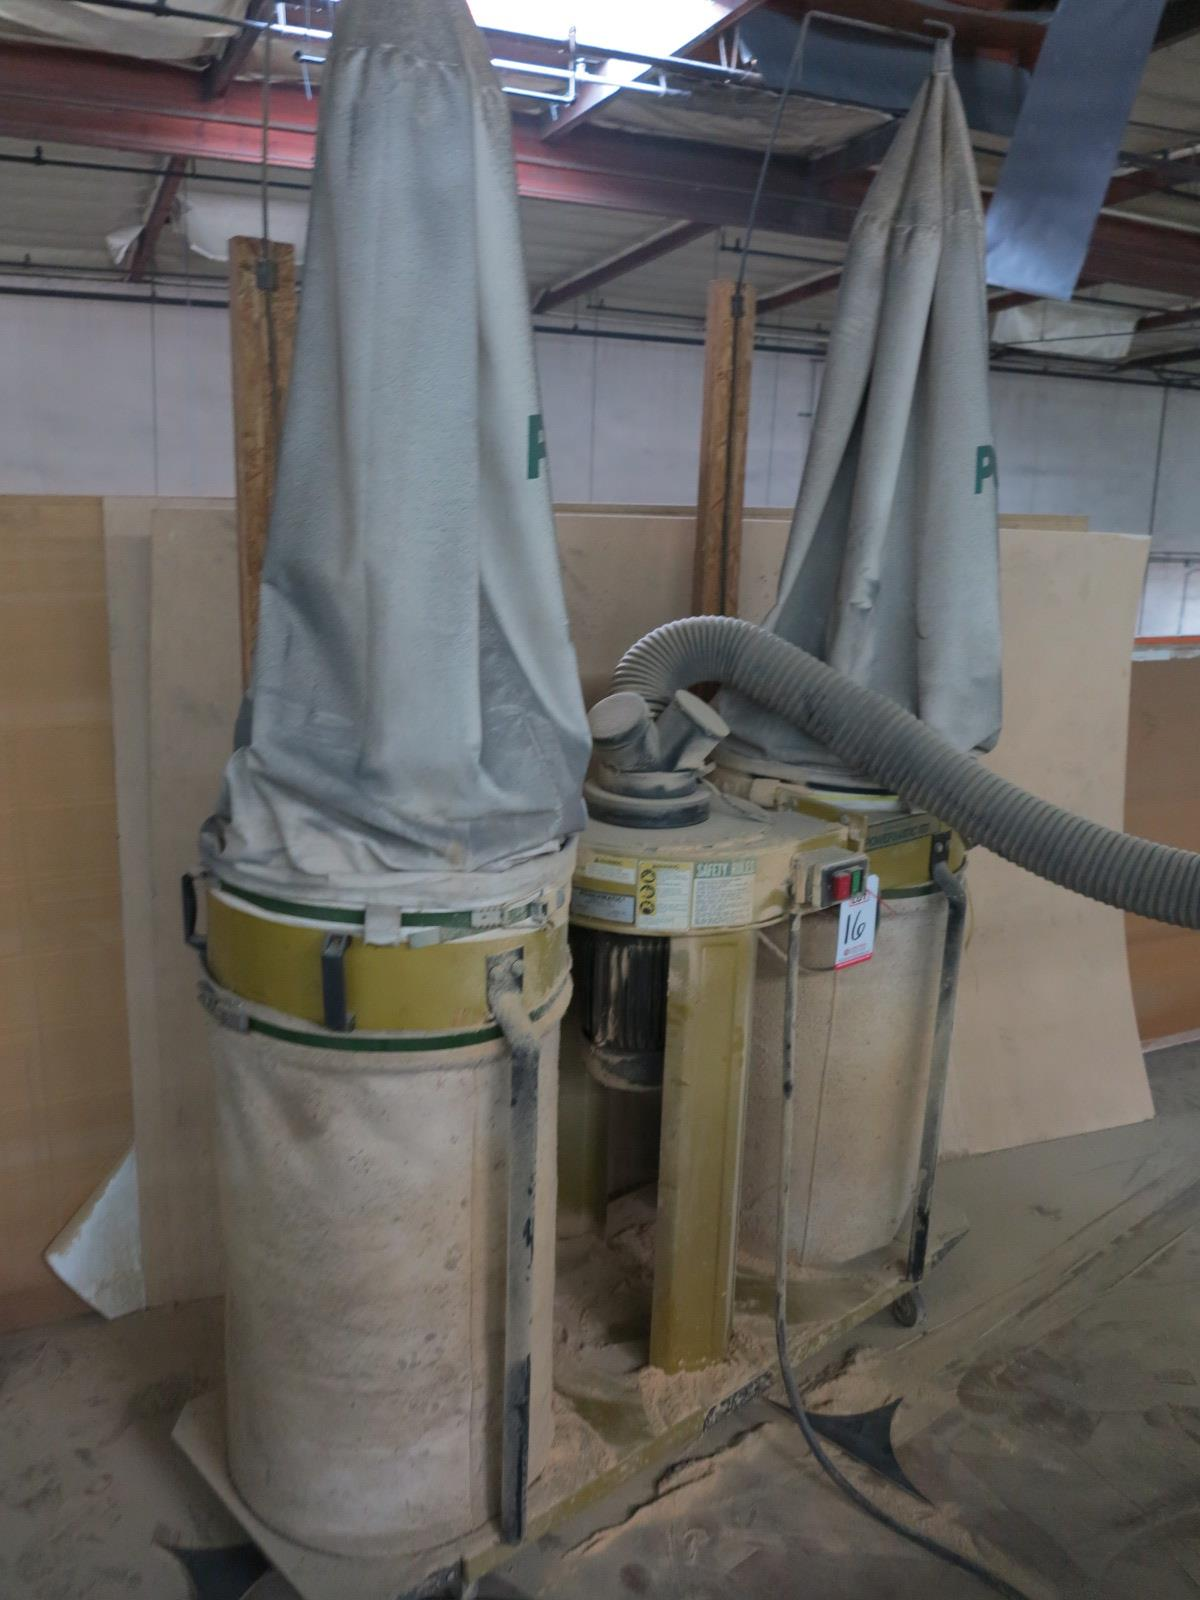 POWERMATIC MODEL 075 2-CANISTER DUST COLLECTOR, 3 HP